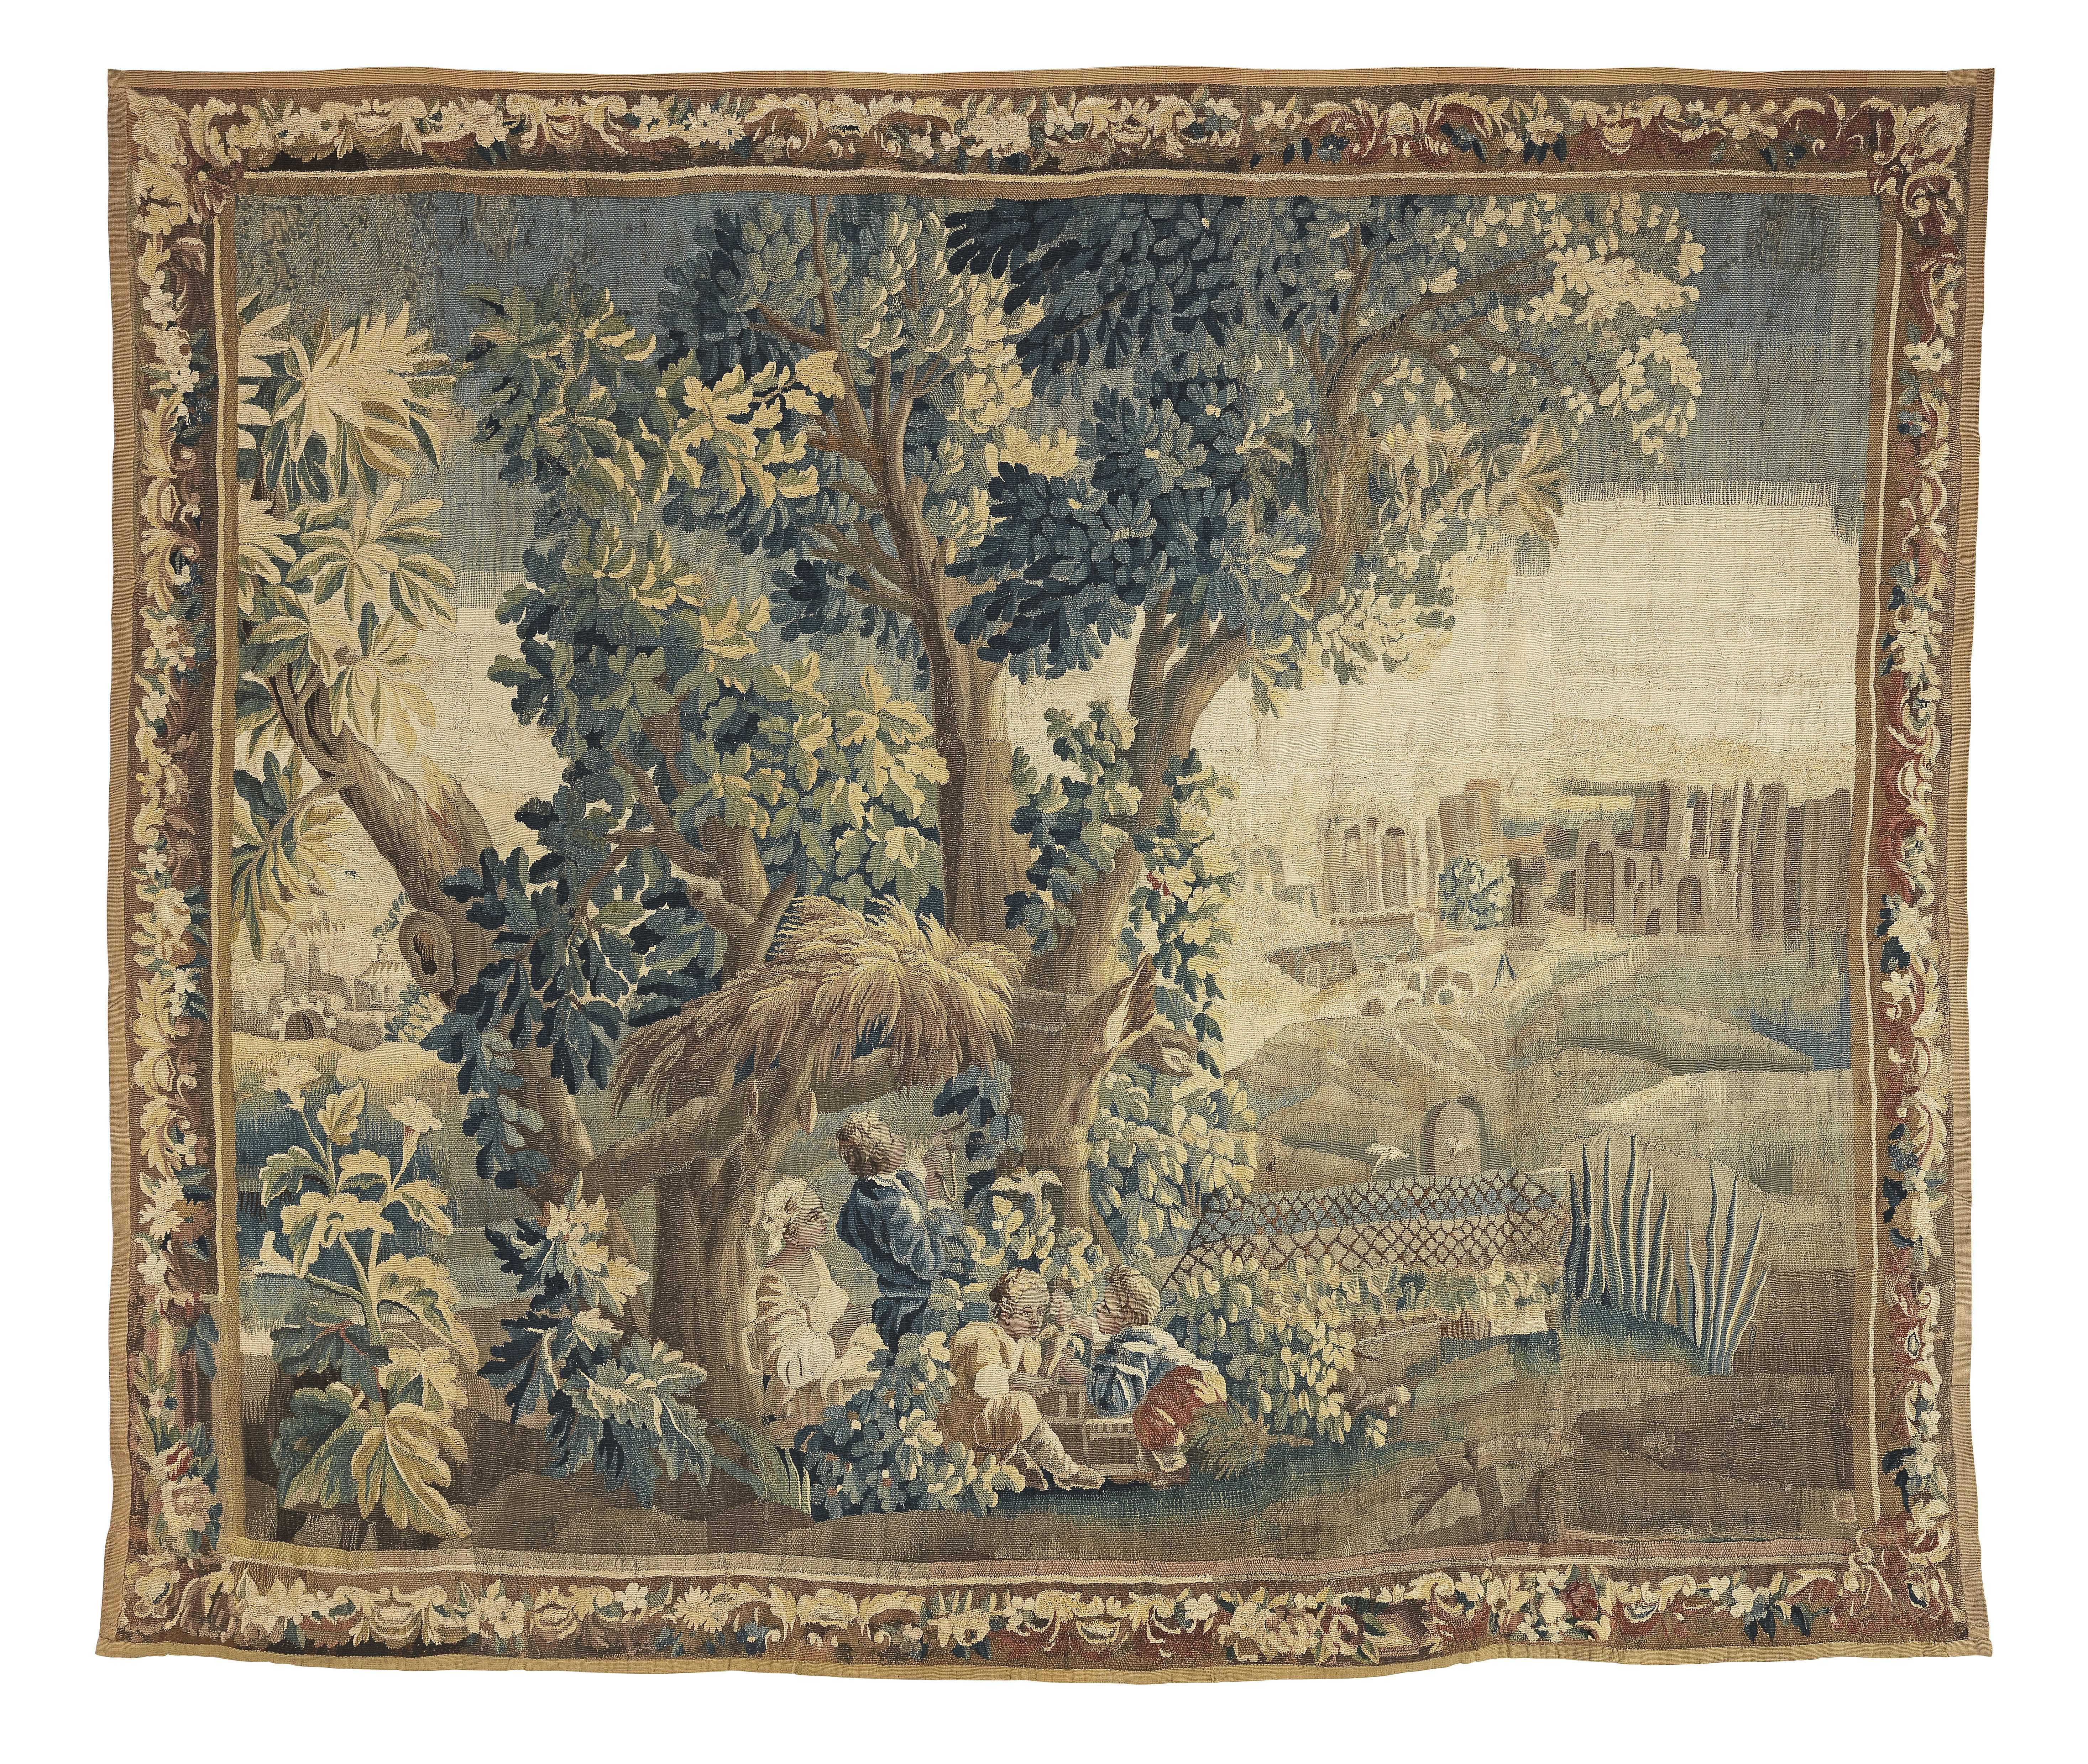 Lot 28 - A charming Flemish Verdure Tapestry mid to late 18th century 282cm x 250cm